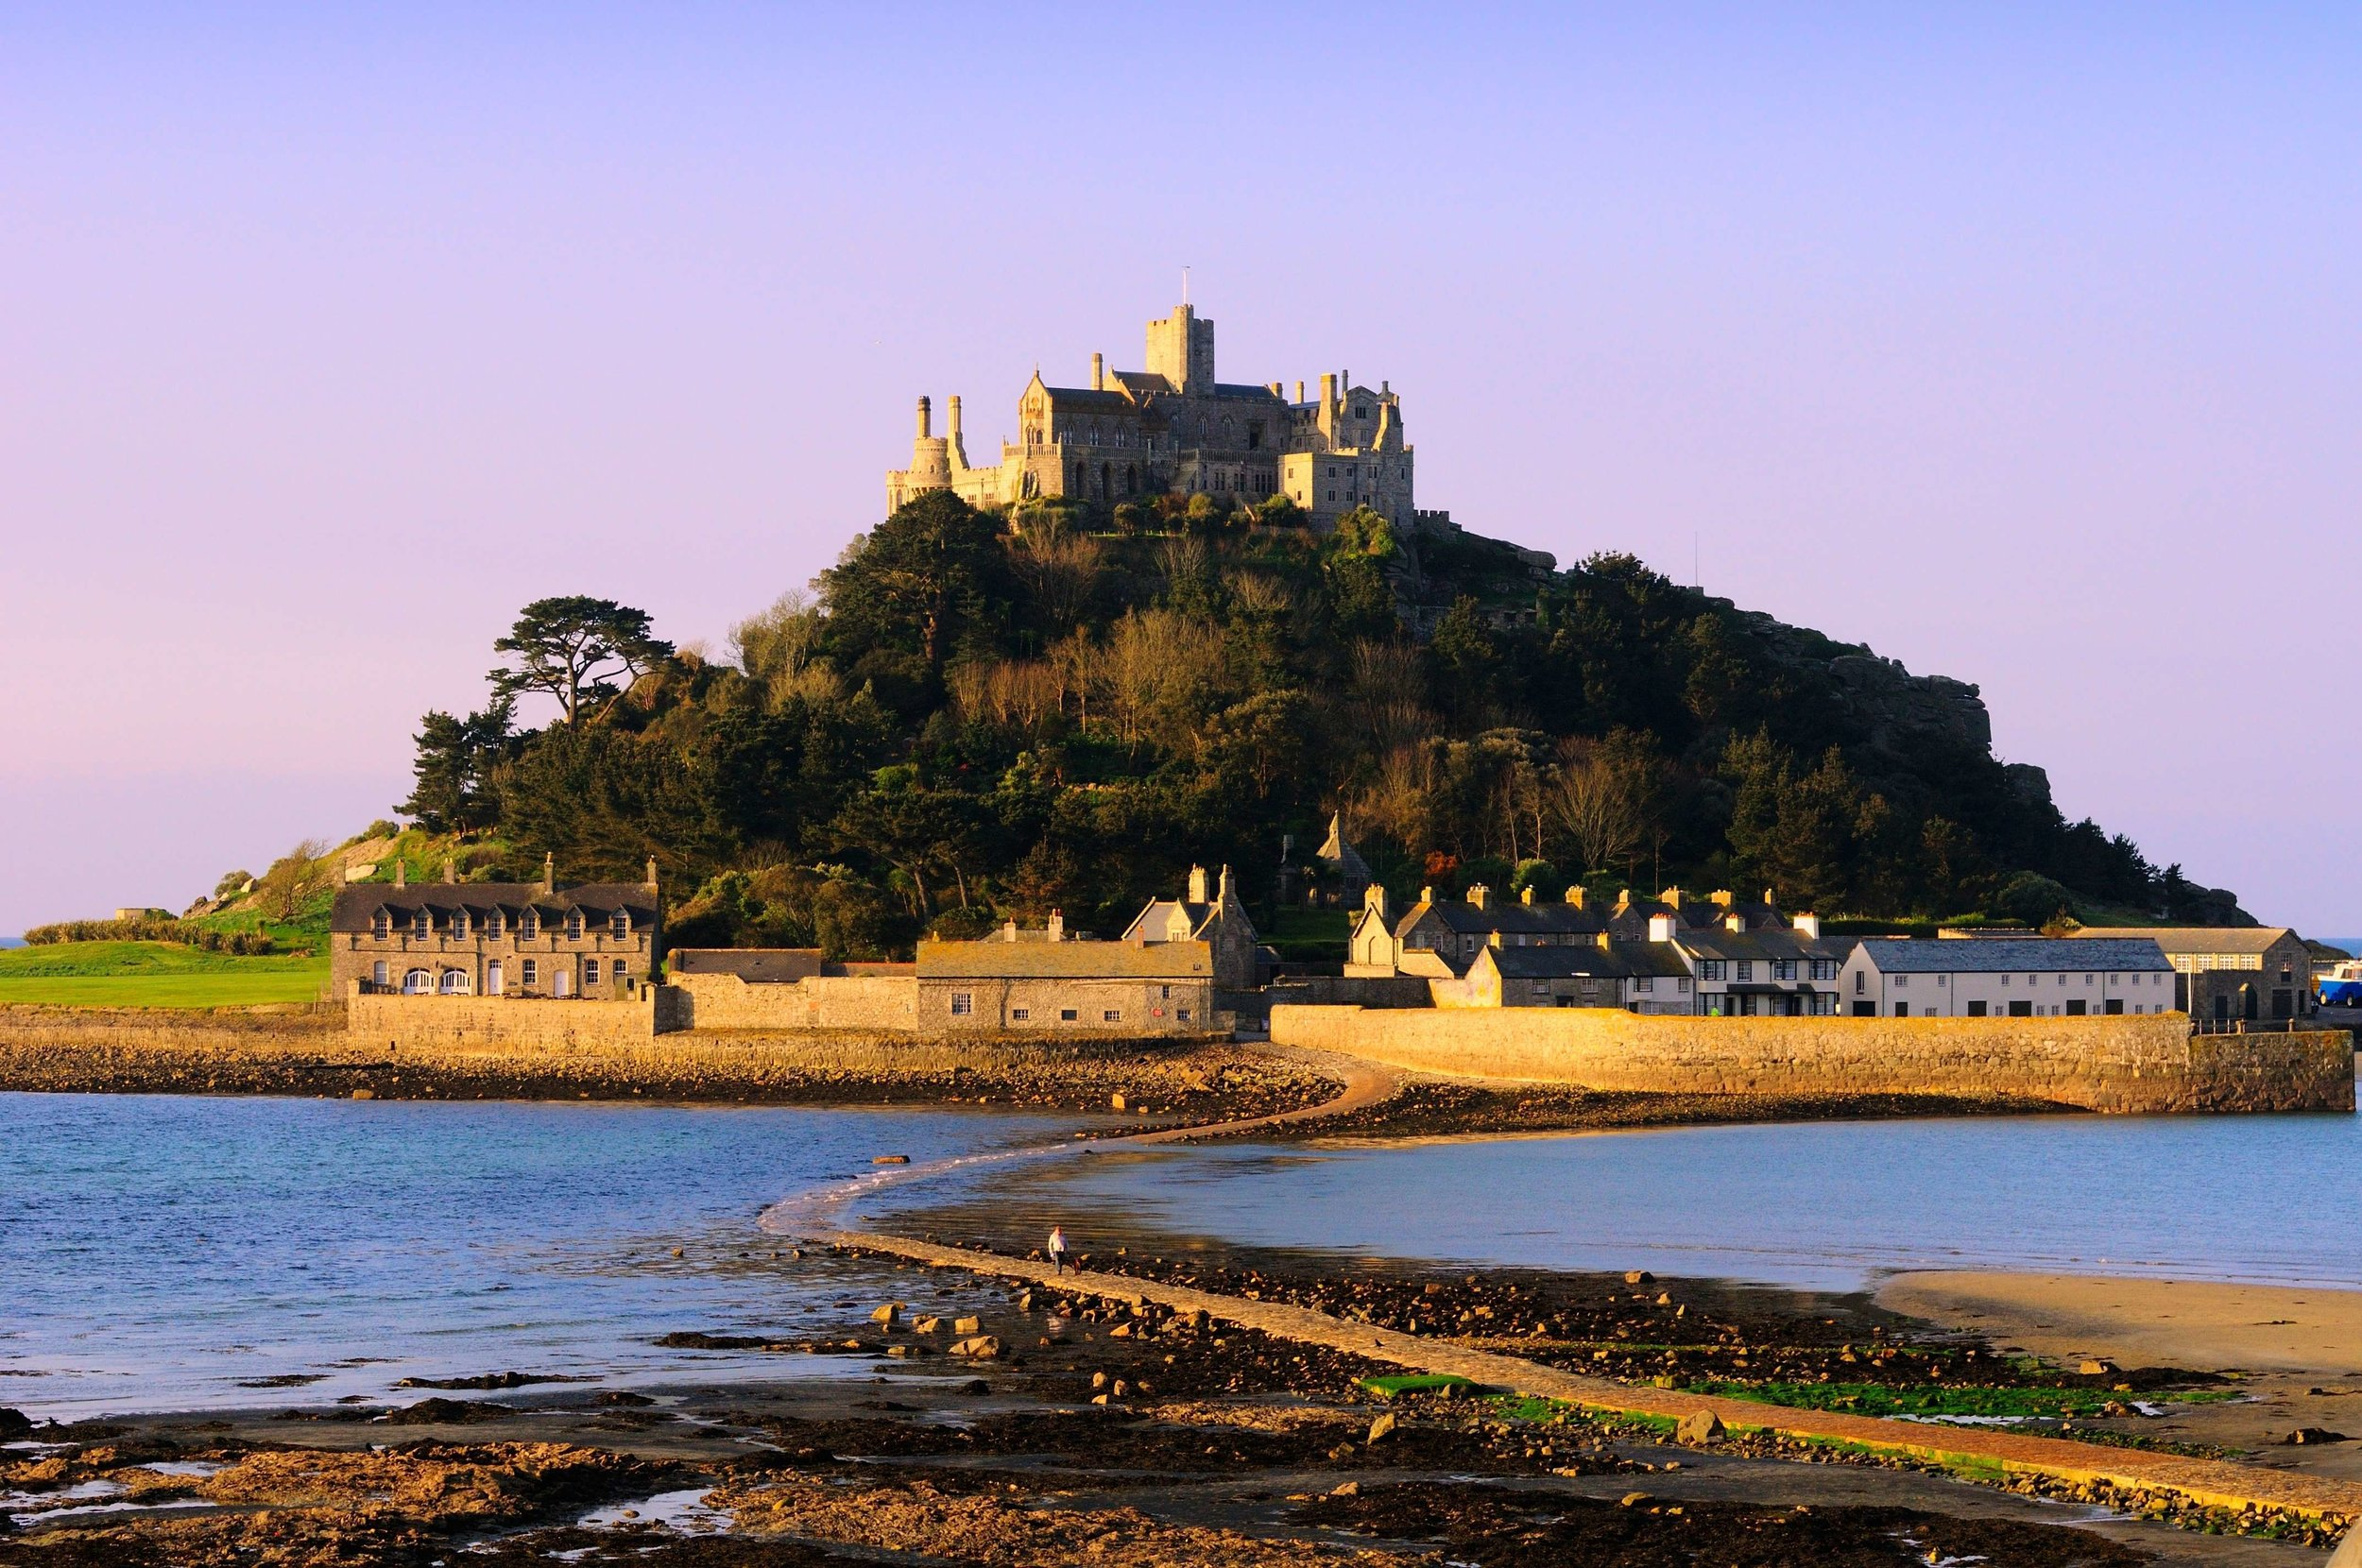 1. St. Michael's Mount - St. Michael's mount is an unmissable sight from wherever you are in Marazion. The iconic Cornish landmark that sits in Mount's bay is a bastion from Cornwall's past and has existed in some sense since the 11th century.You can explore the castle during the day and learn of its storied past from religious roots to times of siege.The Mount's gardens offer a unique climate as they beautifully display rare, sub-tropical plants and flowers that cling to the terraced granite slopes.